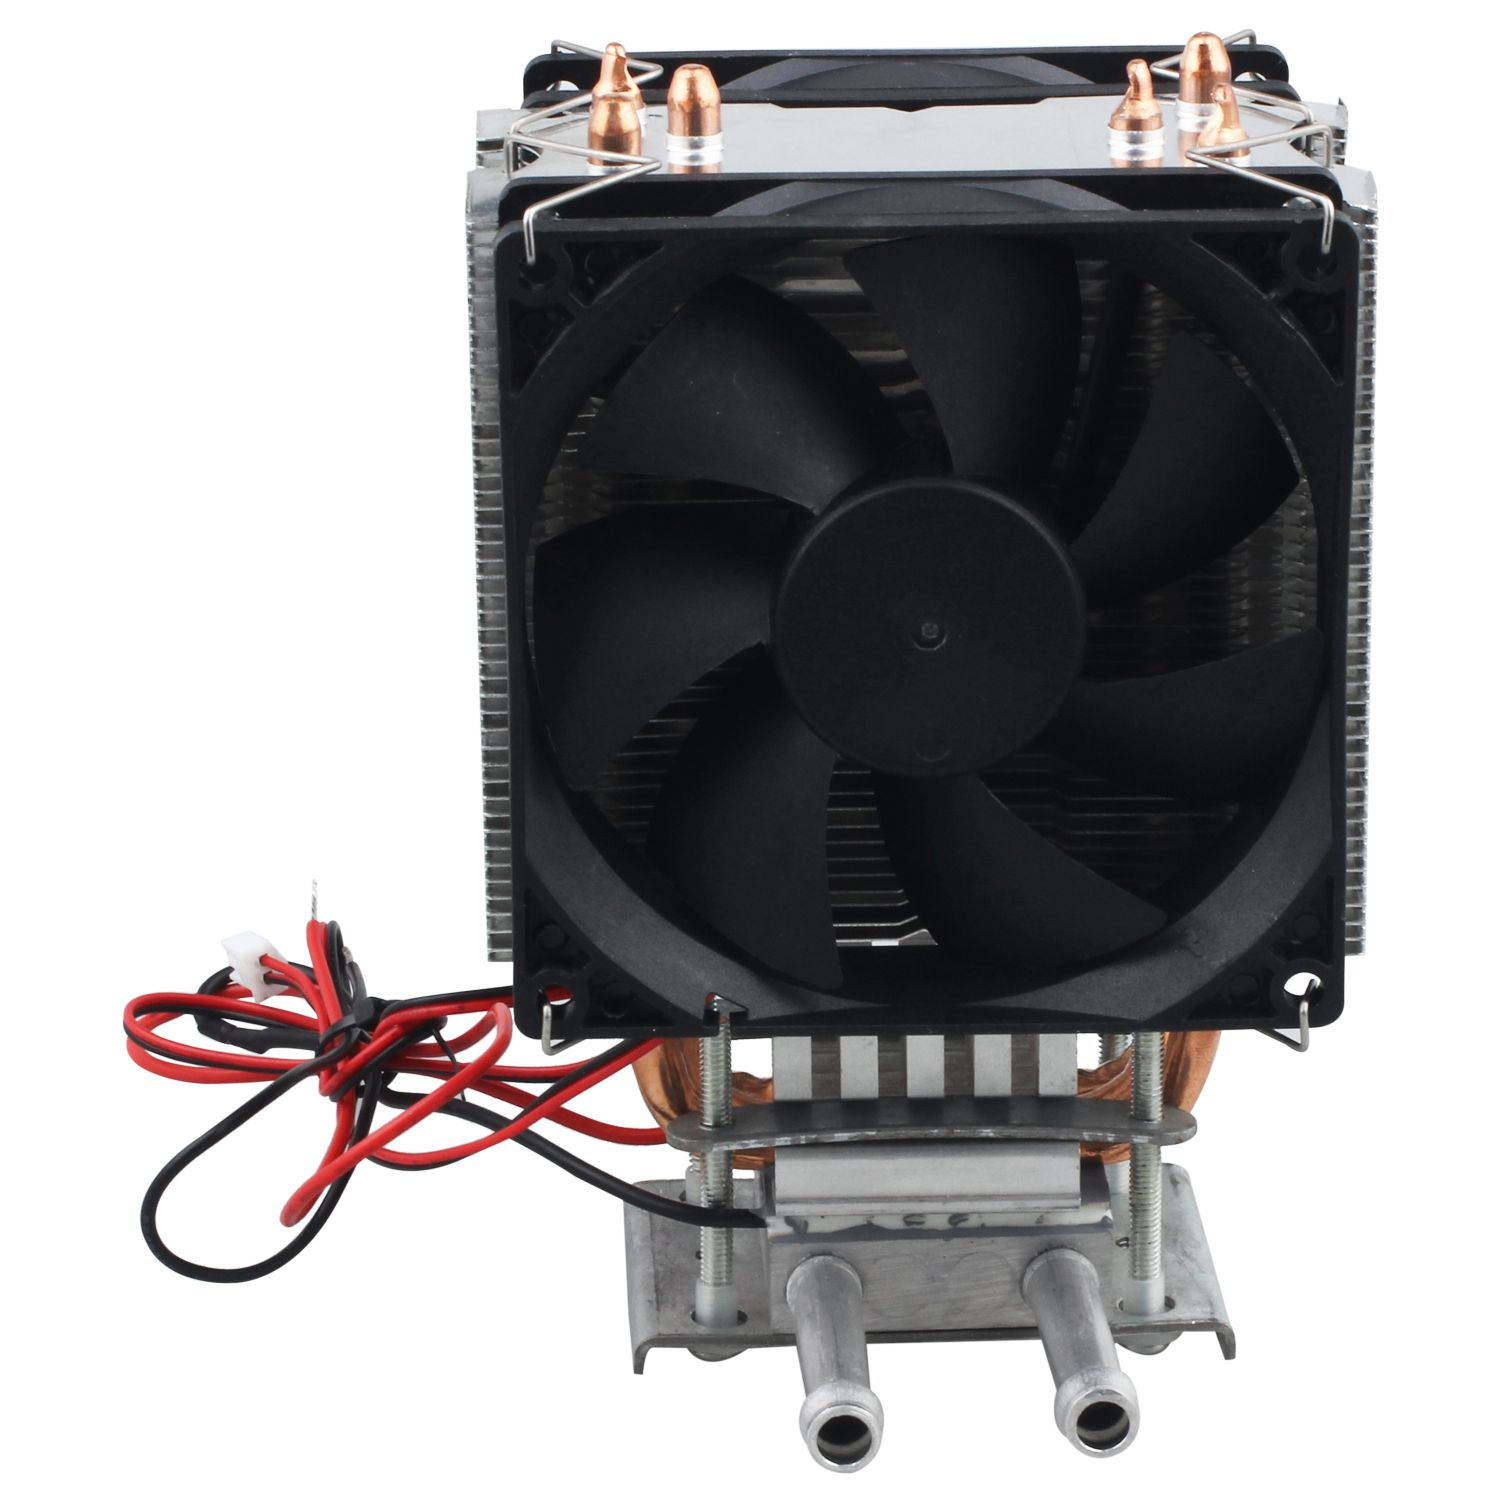 hot-Thermoelectric Peltier Refrigeration DIY Water Cooling System Cooler Device 12V 1 pcs thermoelectric cooler refrigeration diy kits semiconductor refrigeration water chiller cooling system device 120w 180w